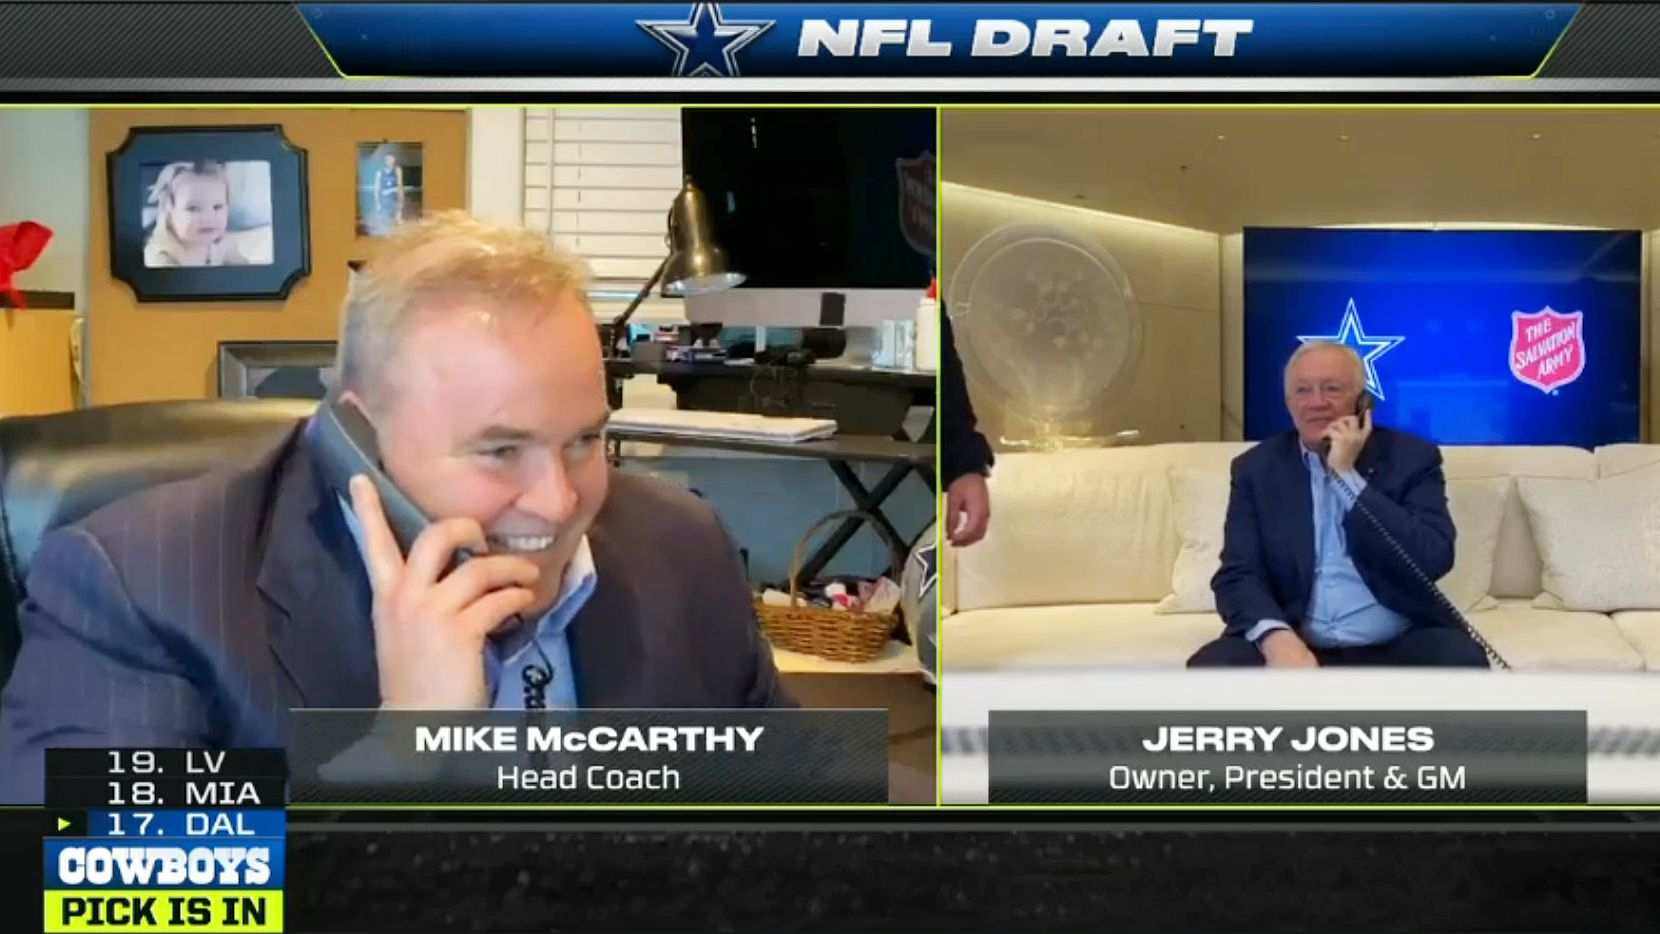 Screen capture Dallas Cowboys head coach Mike McCarthy (left) and Dallas Cowboys owner and general manager Jerry Jones as they make the 17th pick CeeDee Lamb of Oklahoma 1 in the first round of the NFL Draft on Thursday, April 23, 2020. Due to the coronavirus pandemic the NFL Draft was held virtually. (ESPN)